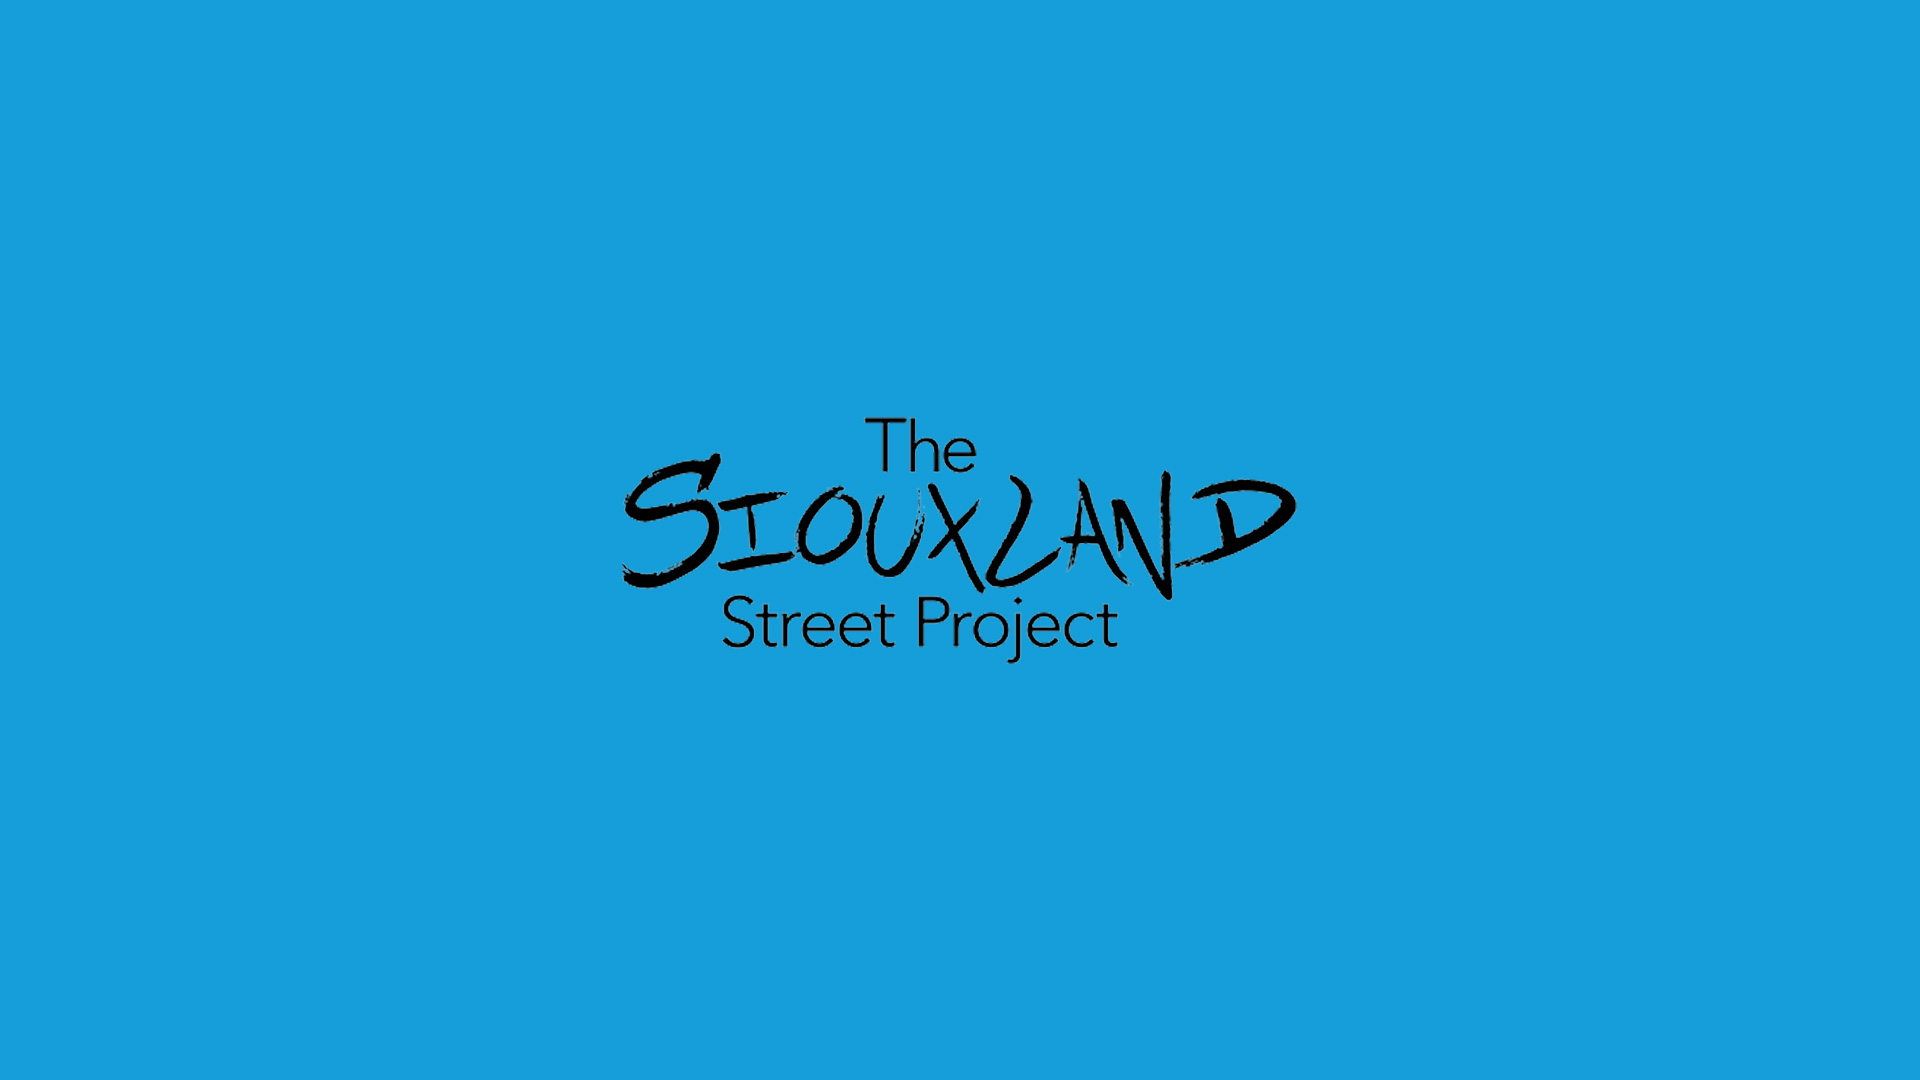 Siouxland Street Project — Siouxland Human Investment Partnership